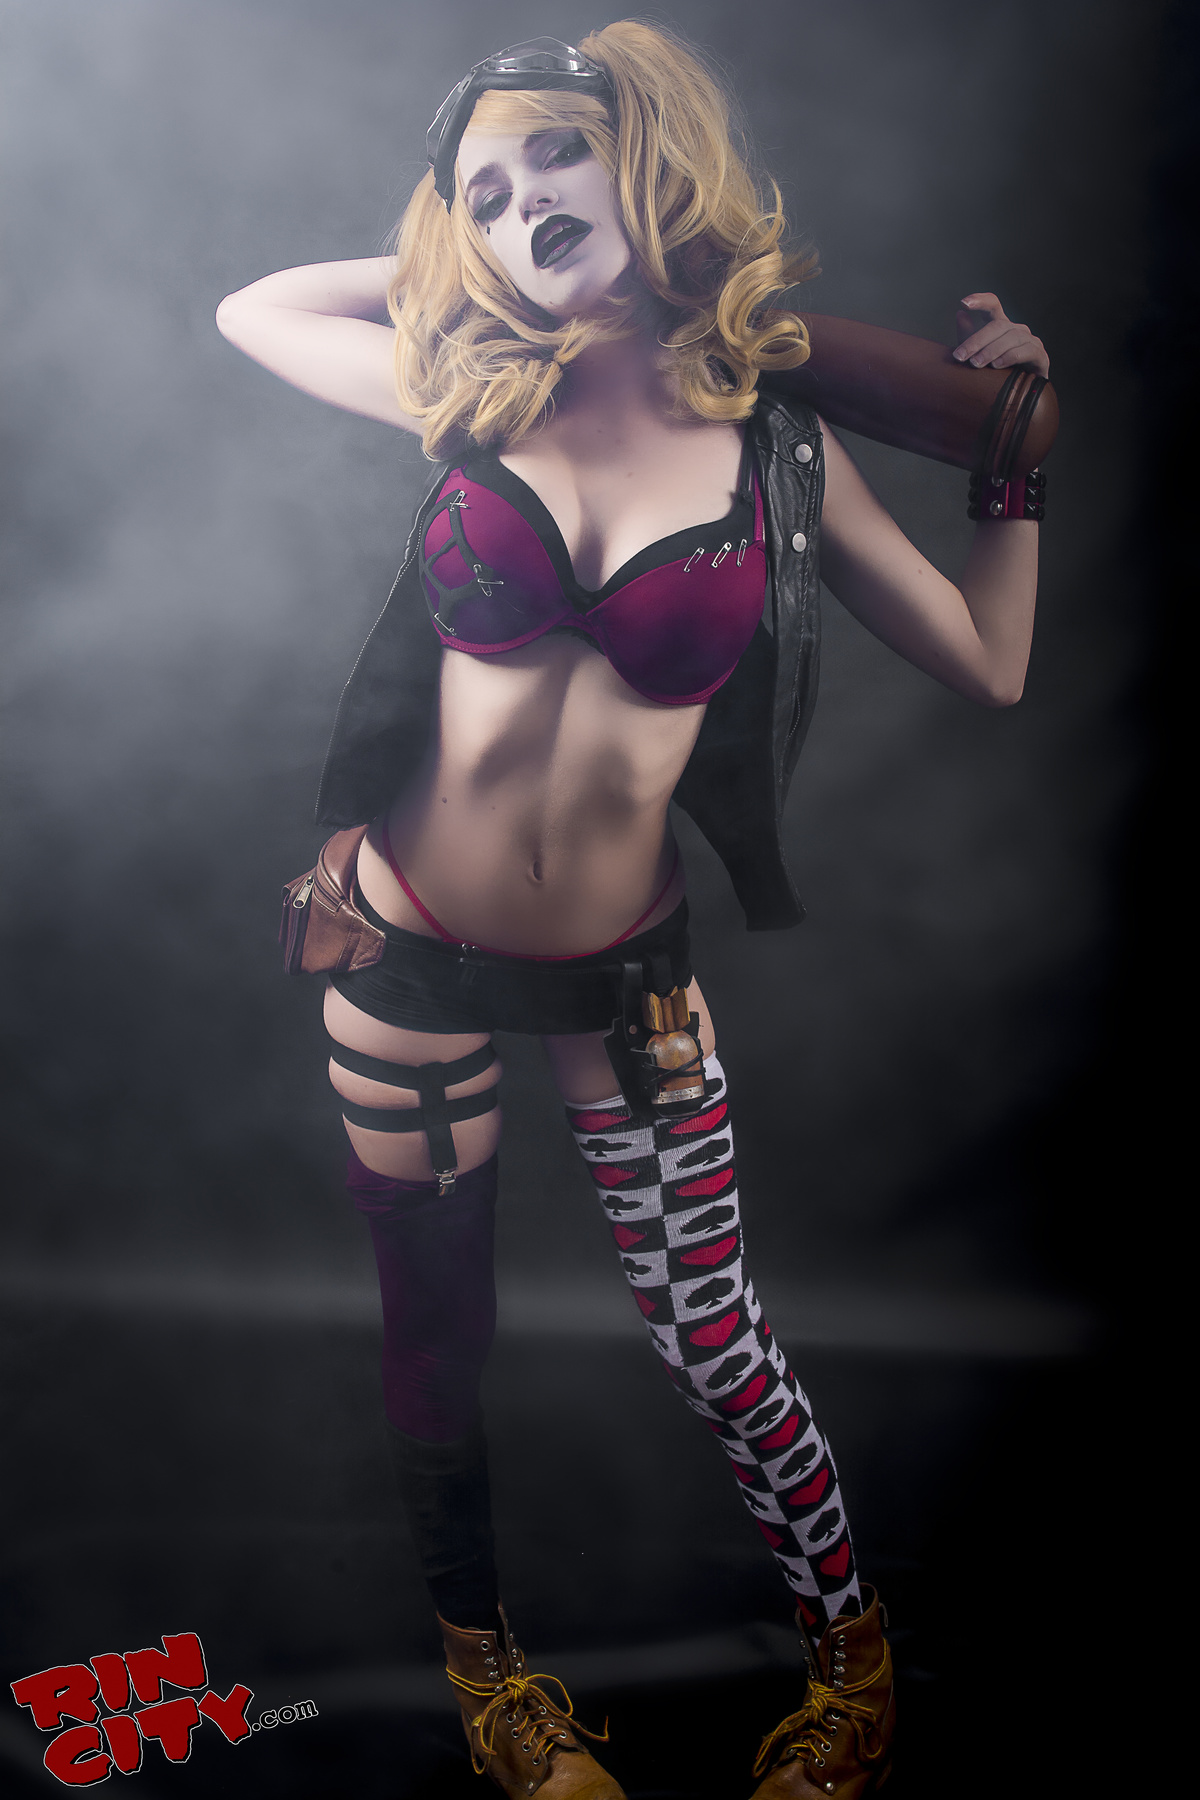 Free harley quinn nude pics consider, that